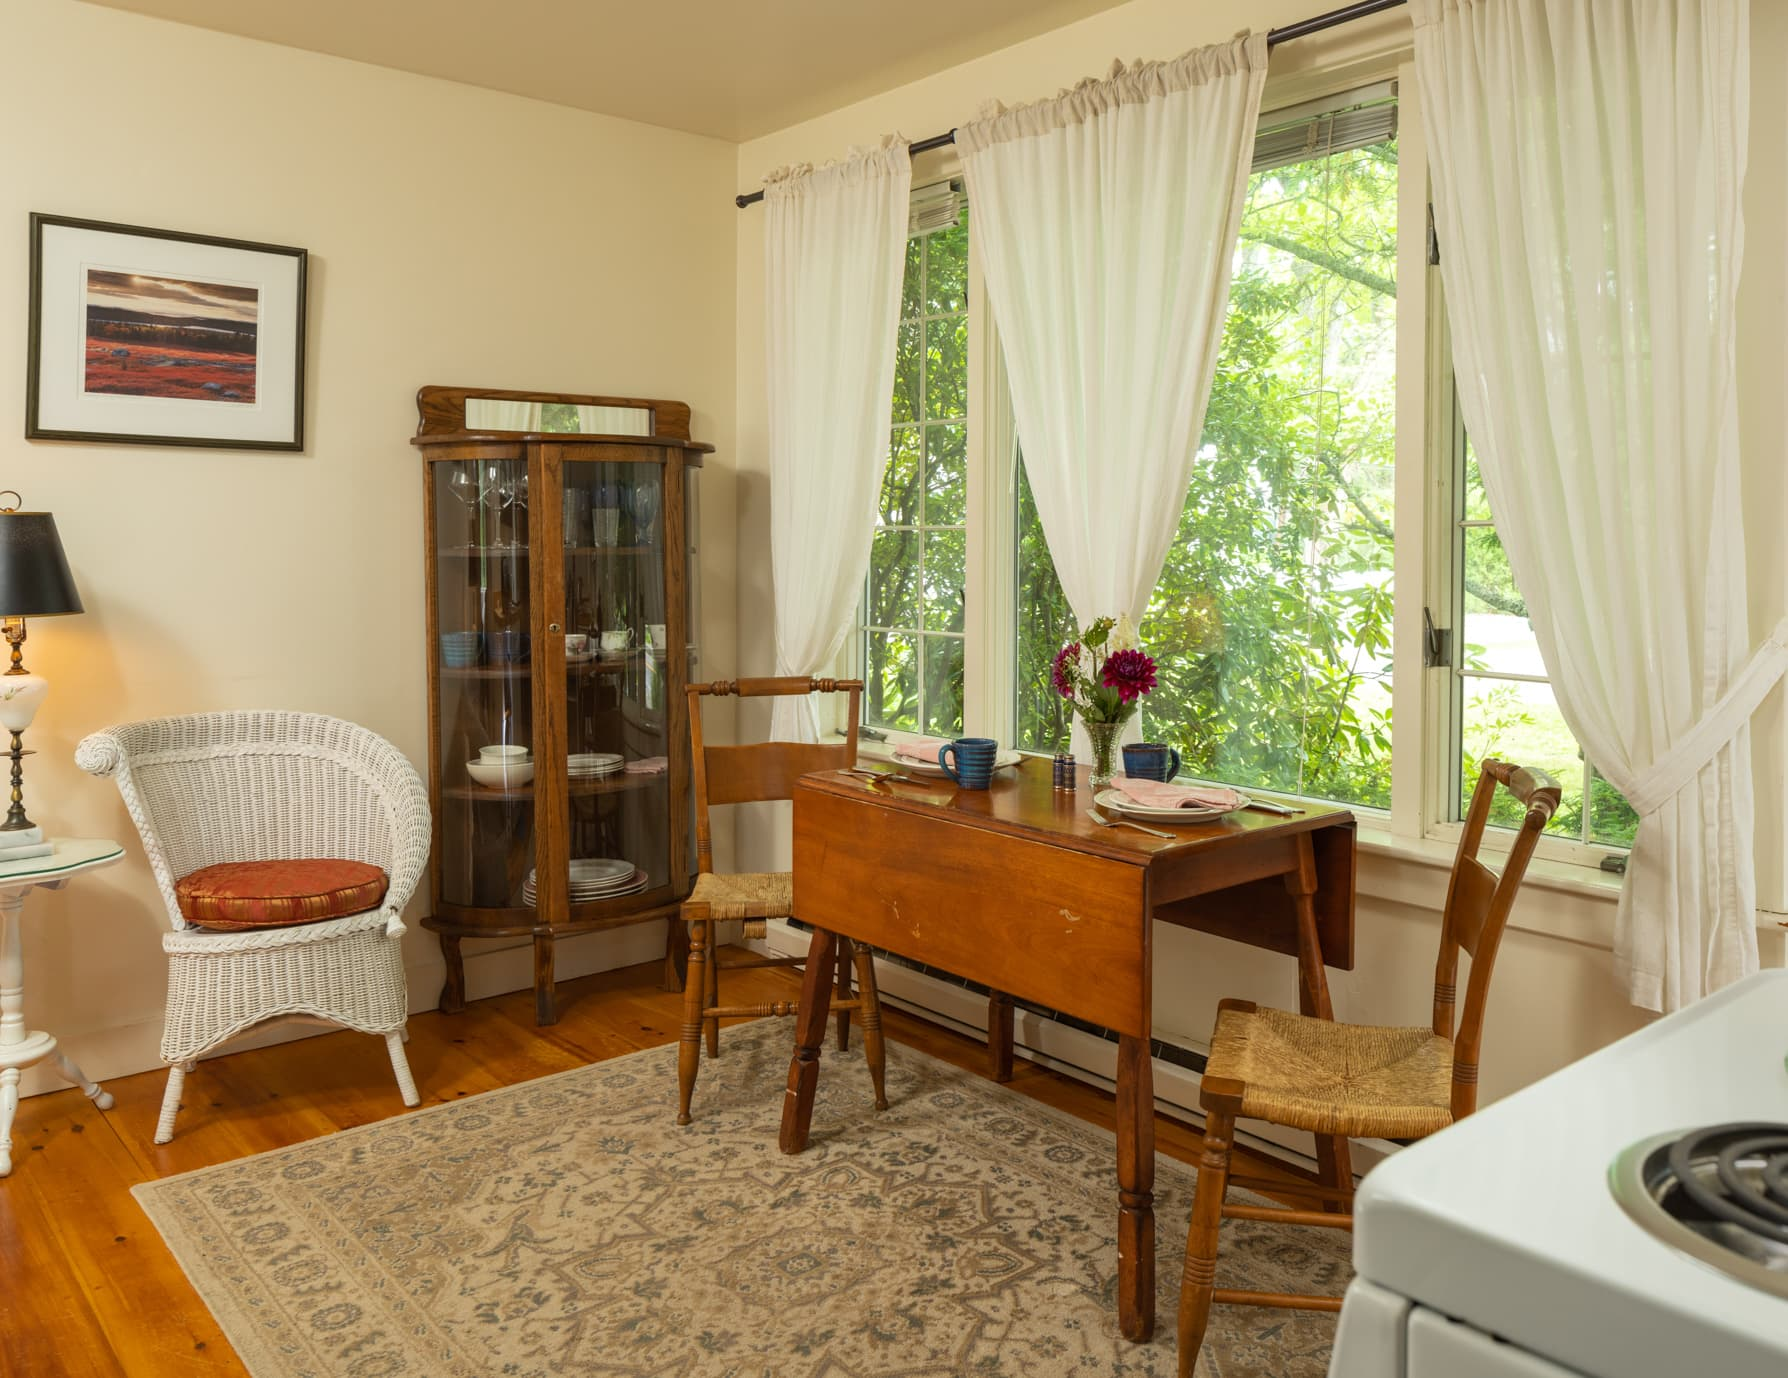 Cape House Studio with a small kitchen and a leaved table for two